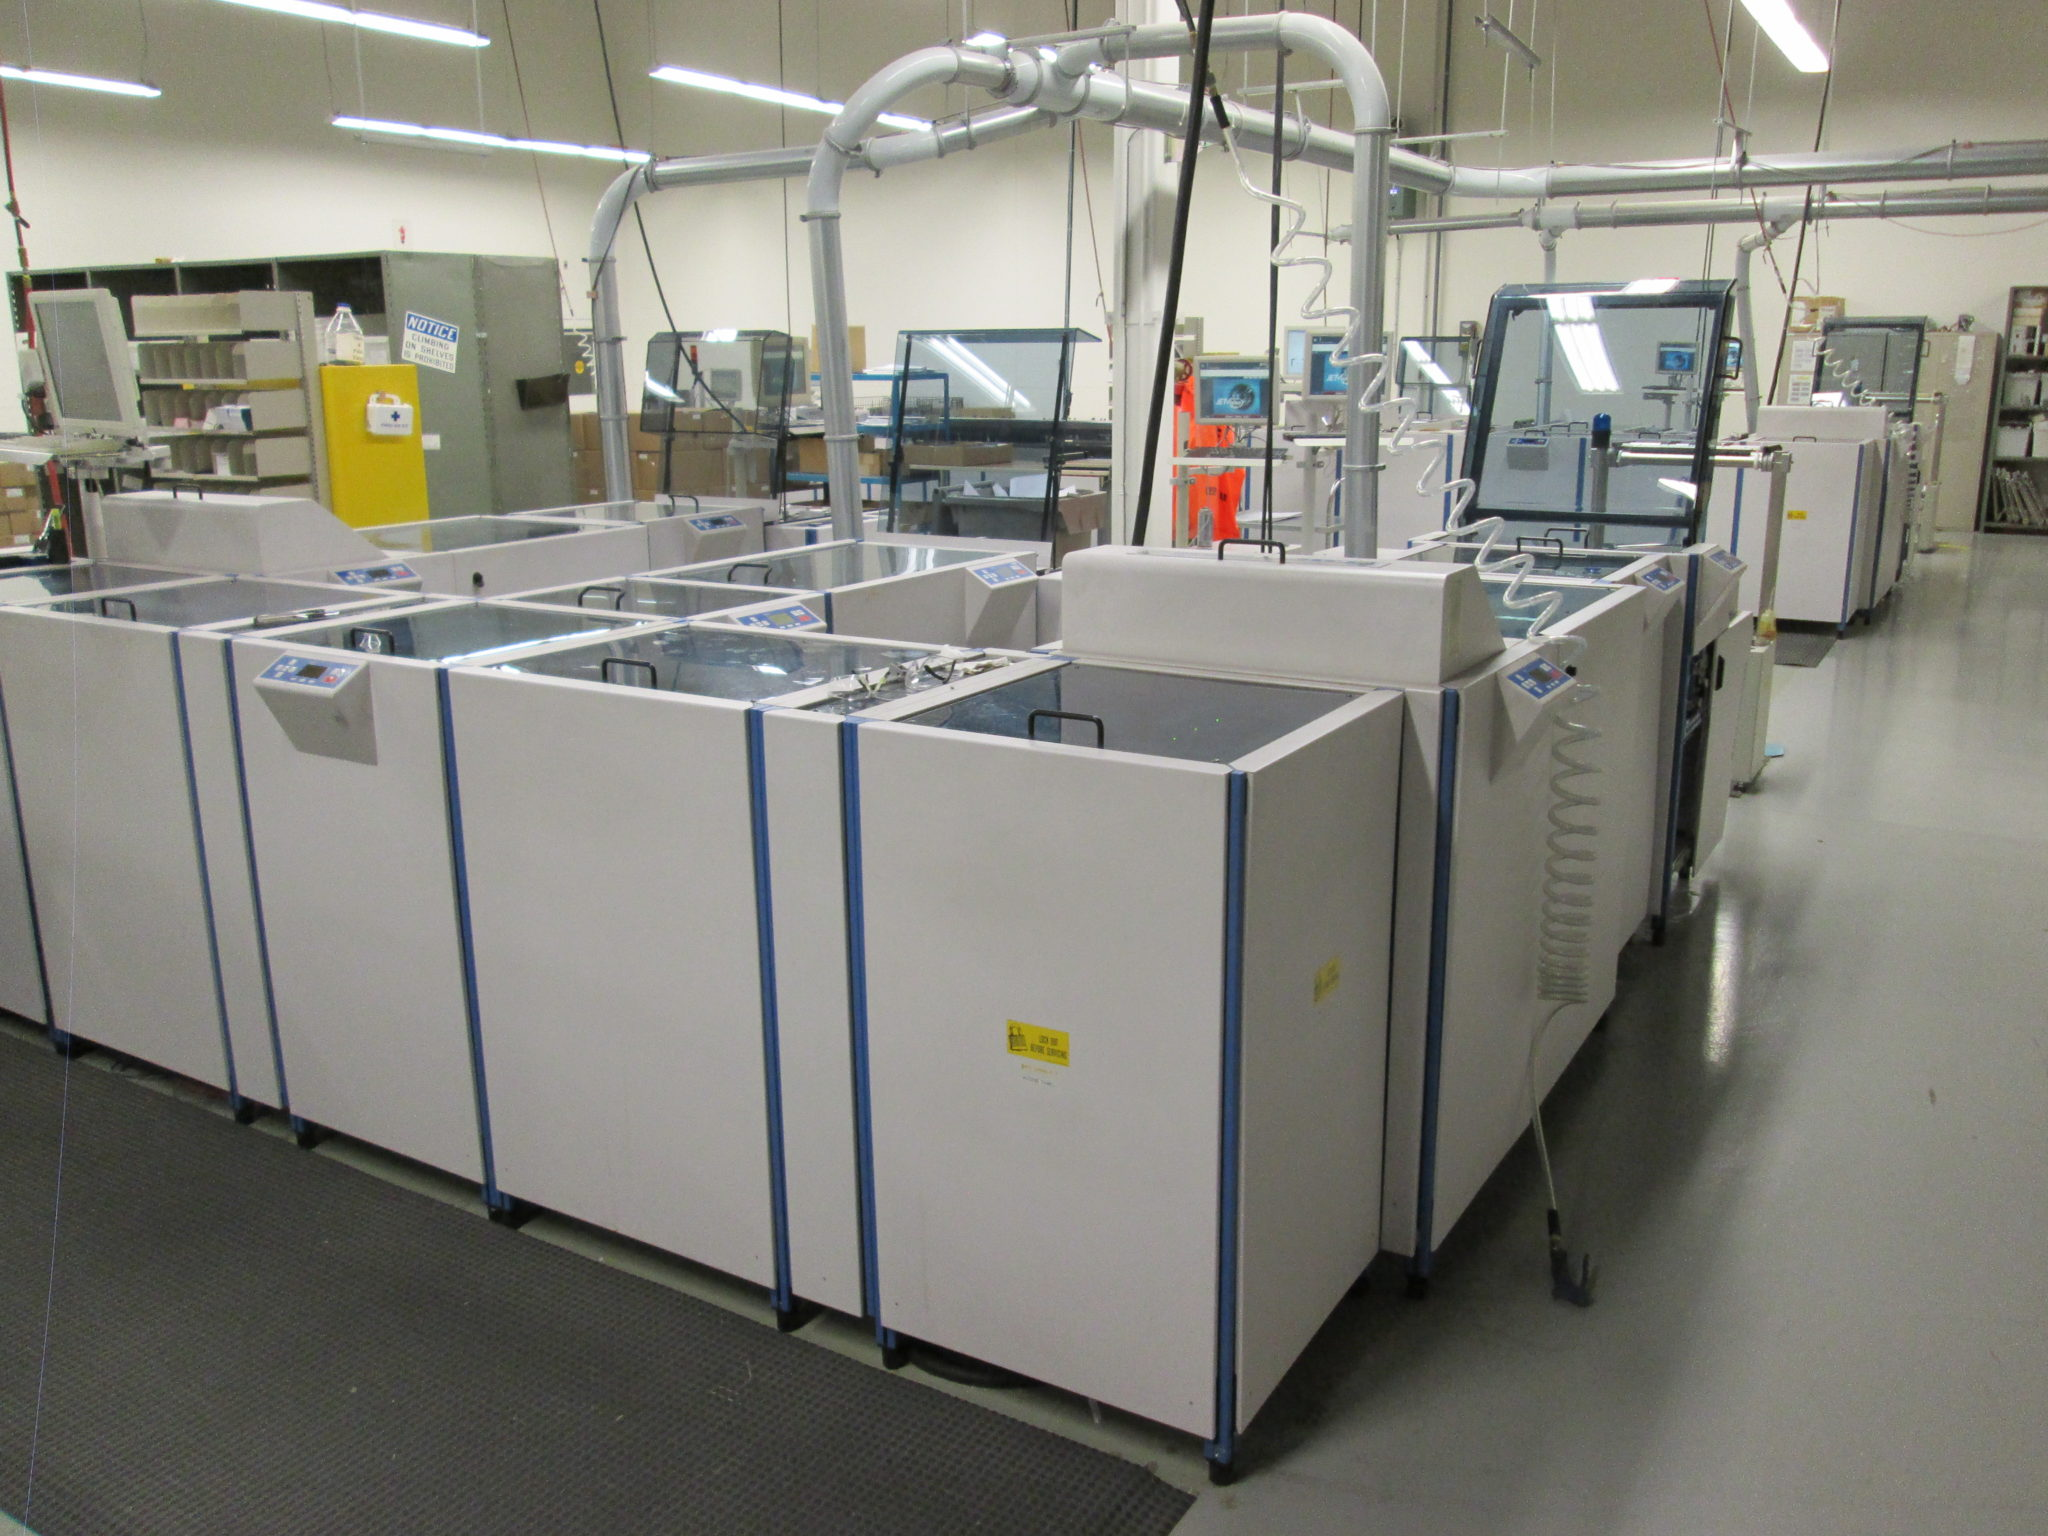 Bell & Howell Enduro Inserting System Pre-Owned - For Sale